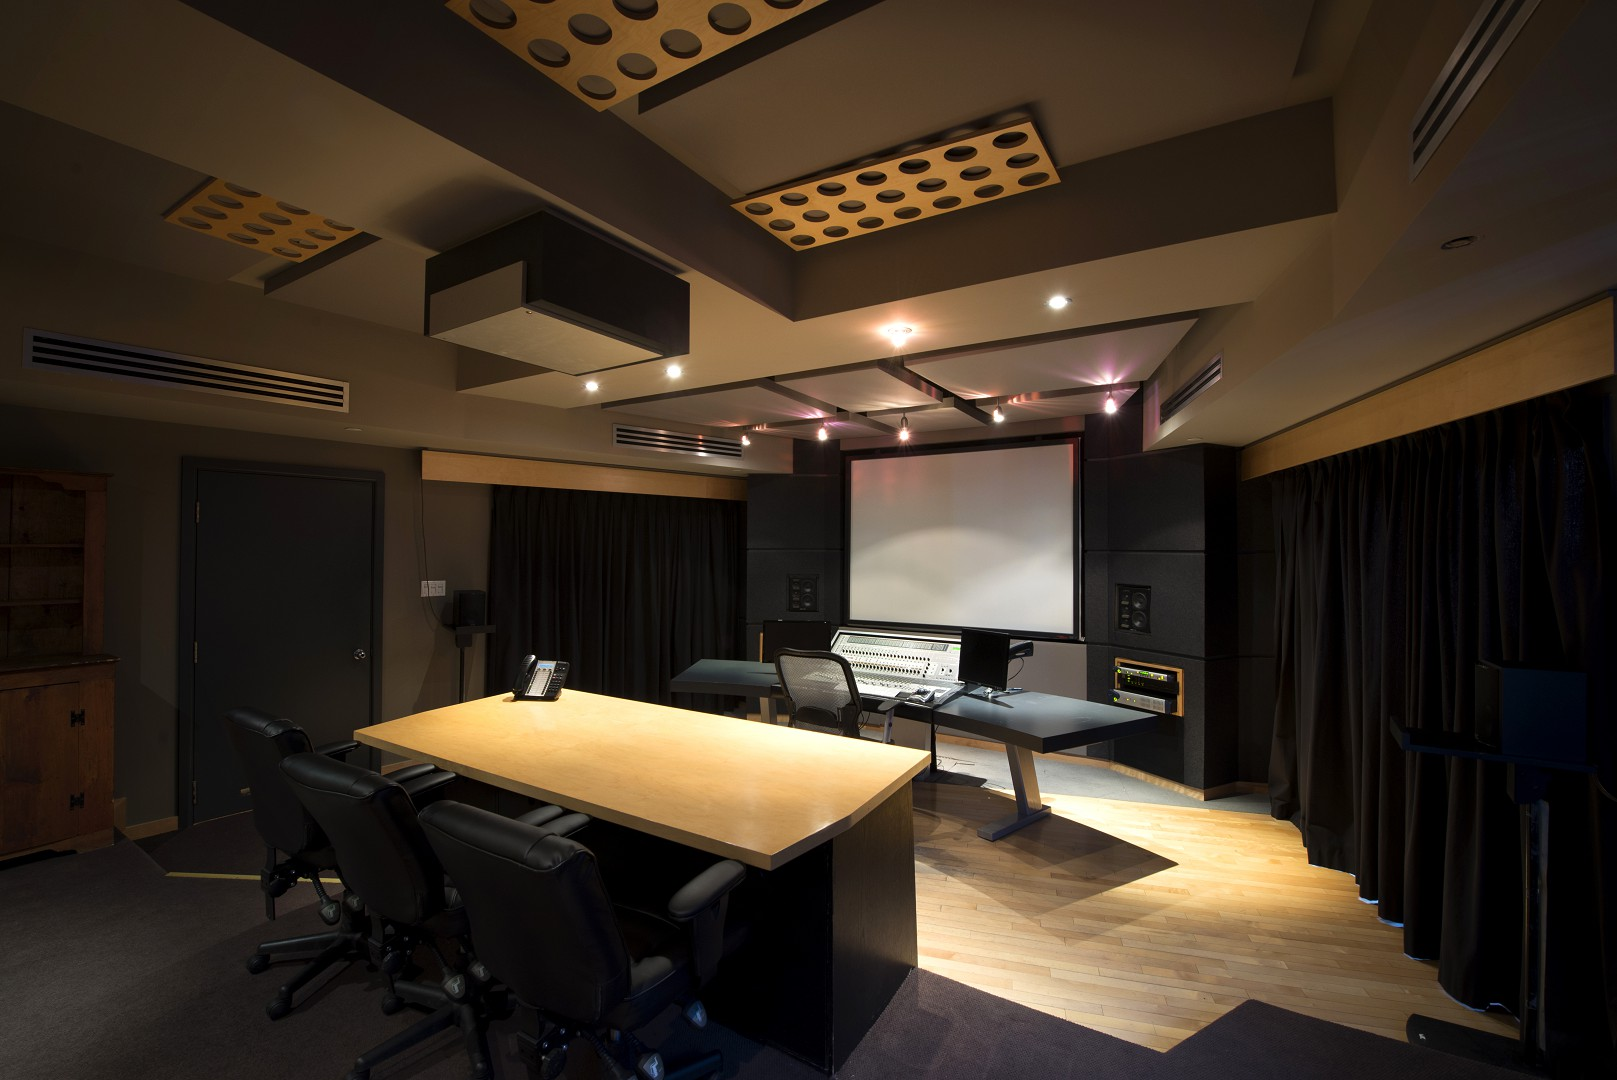 Studio2_CornerView_HighRes-hd.jpg